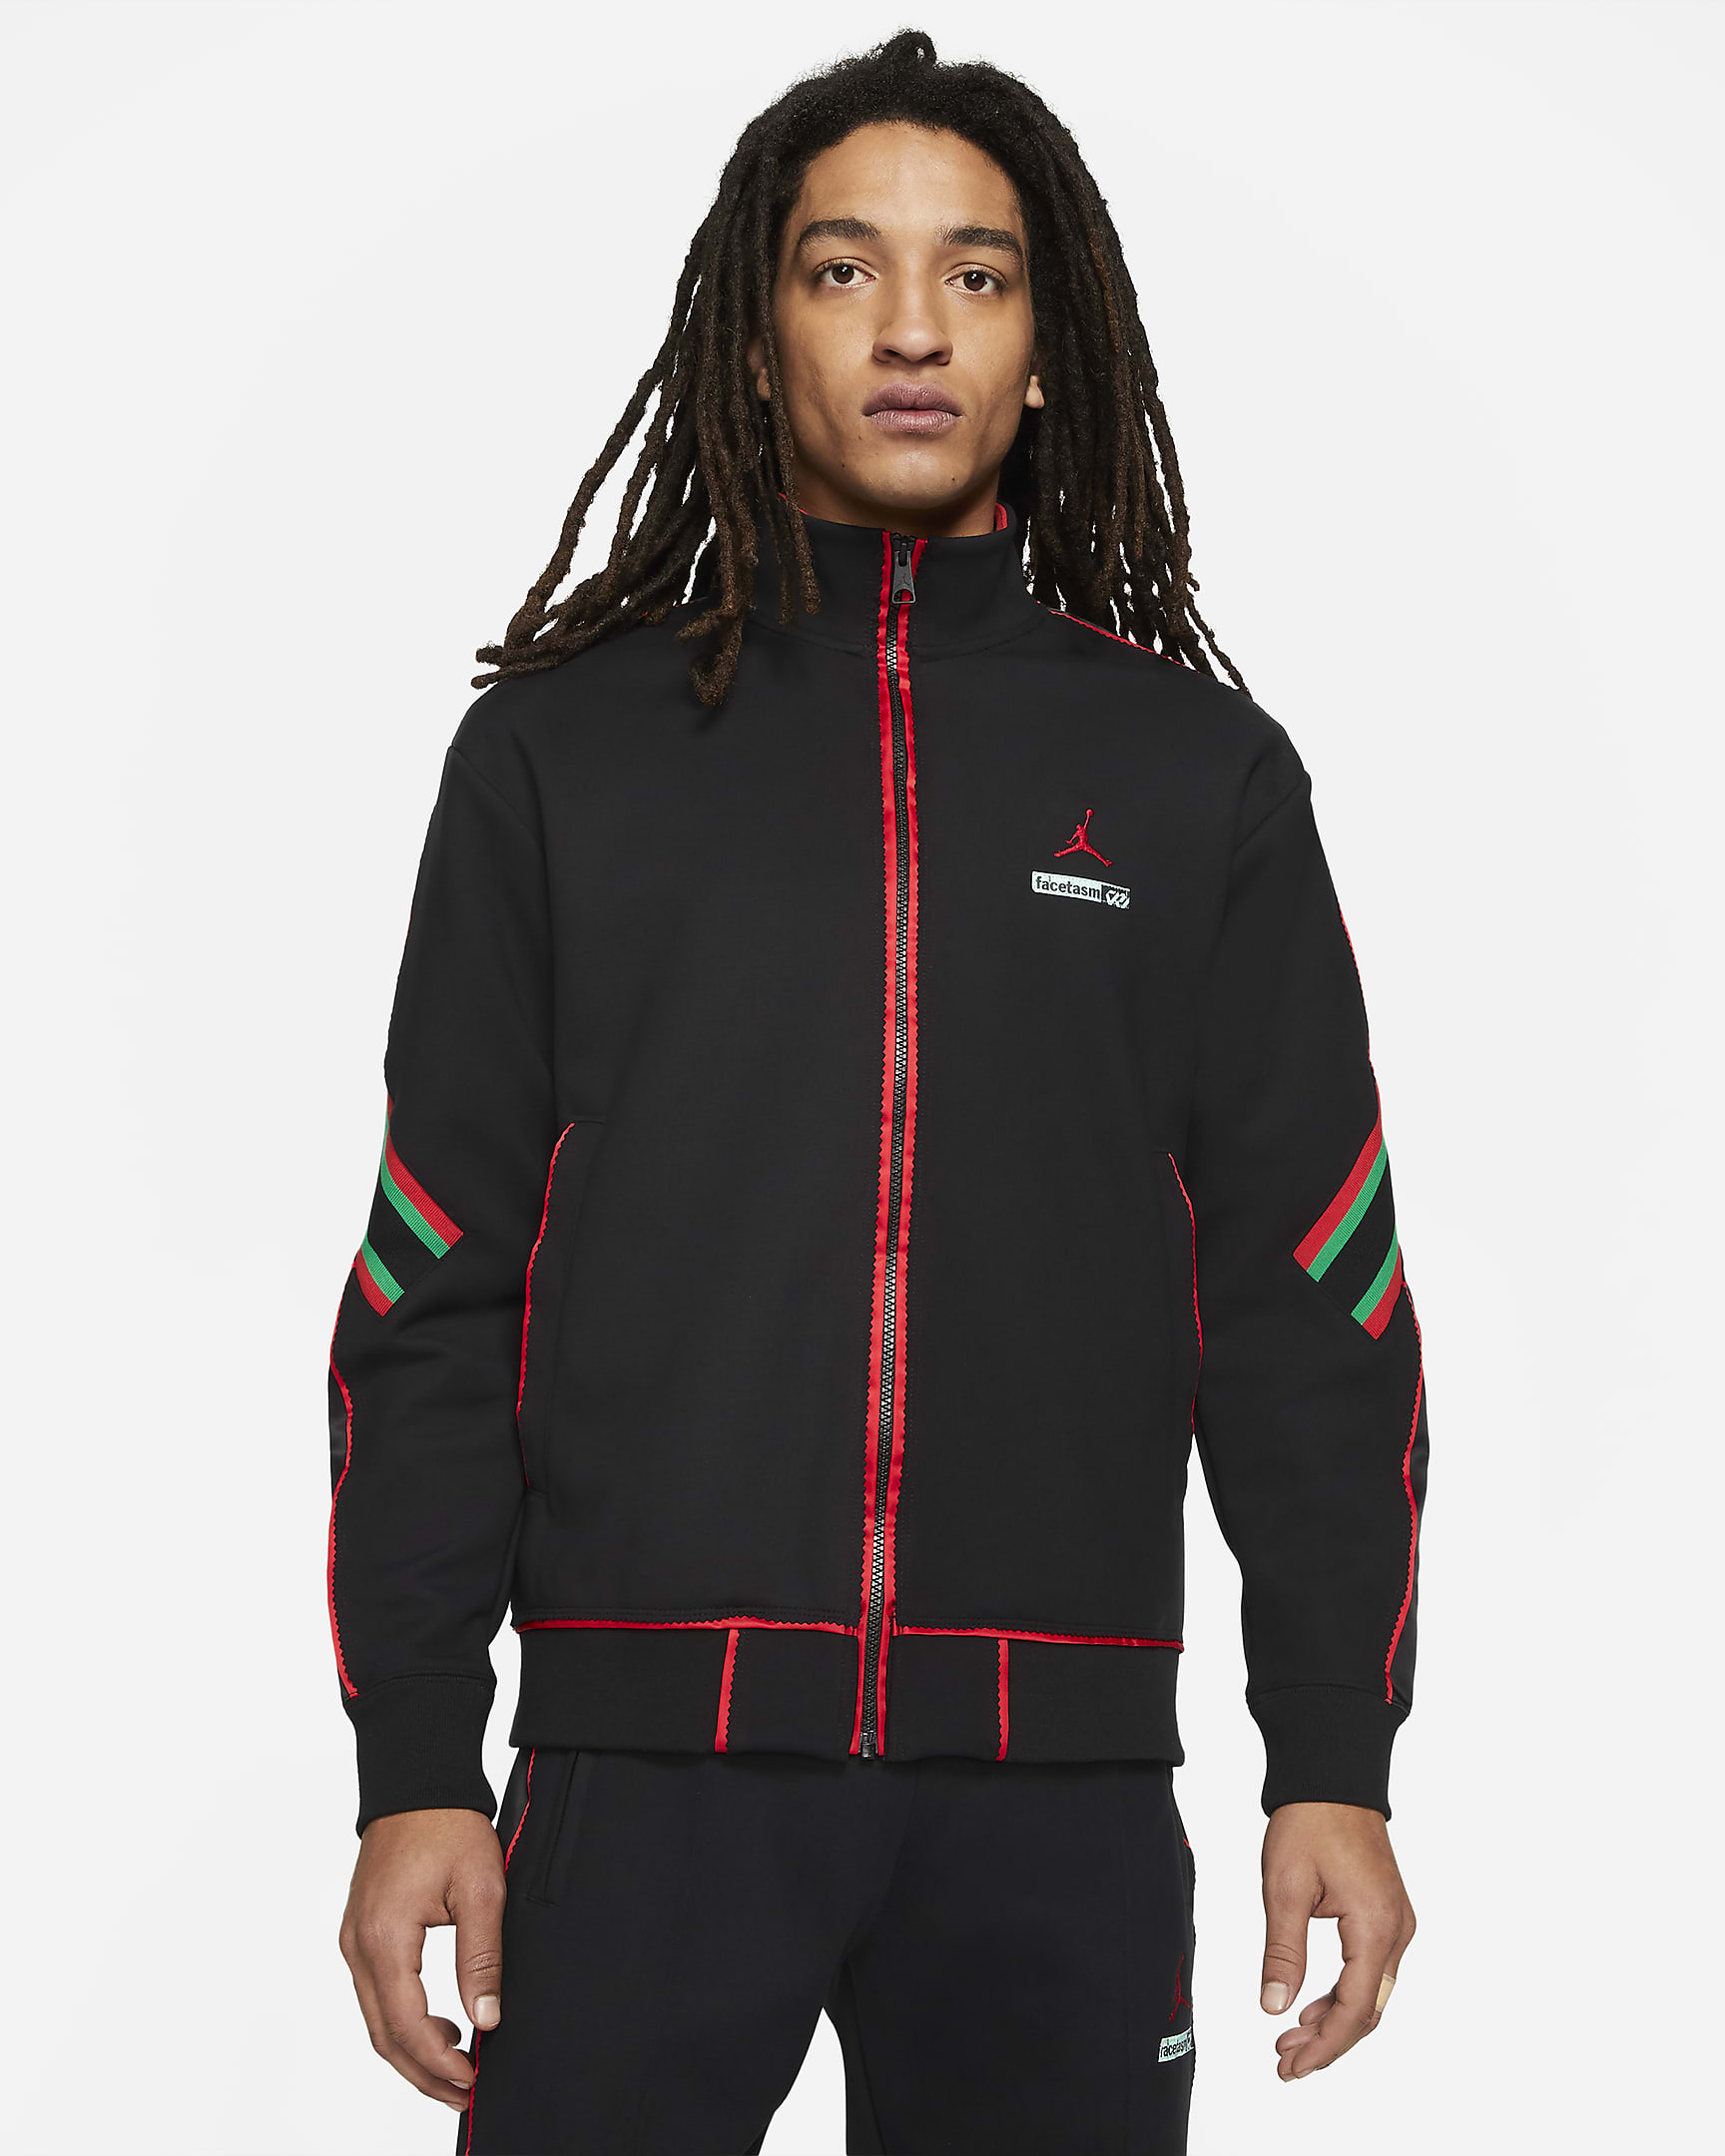 jordan-why-not-x-facetasm-mens-track-jacket-CmdpQ2